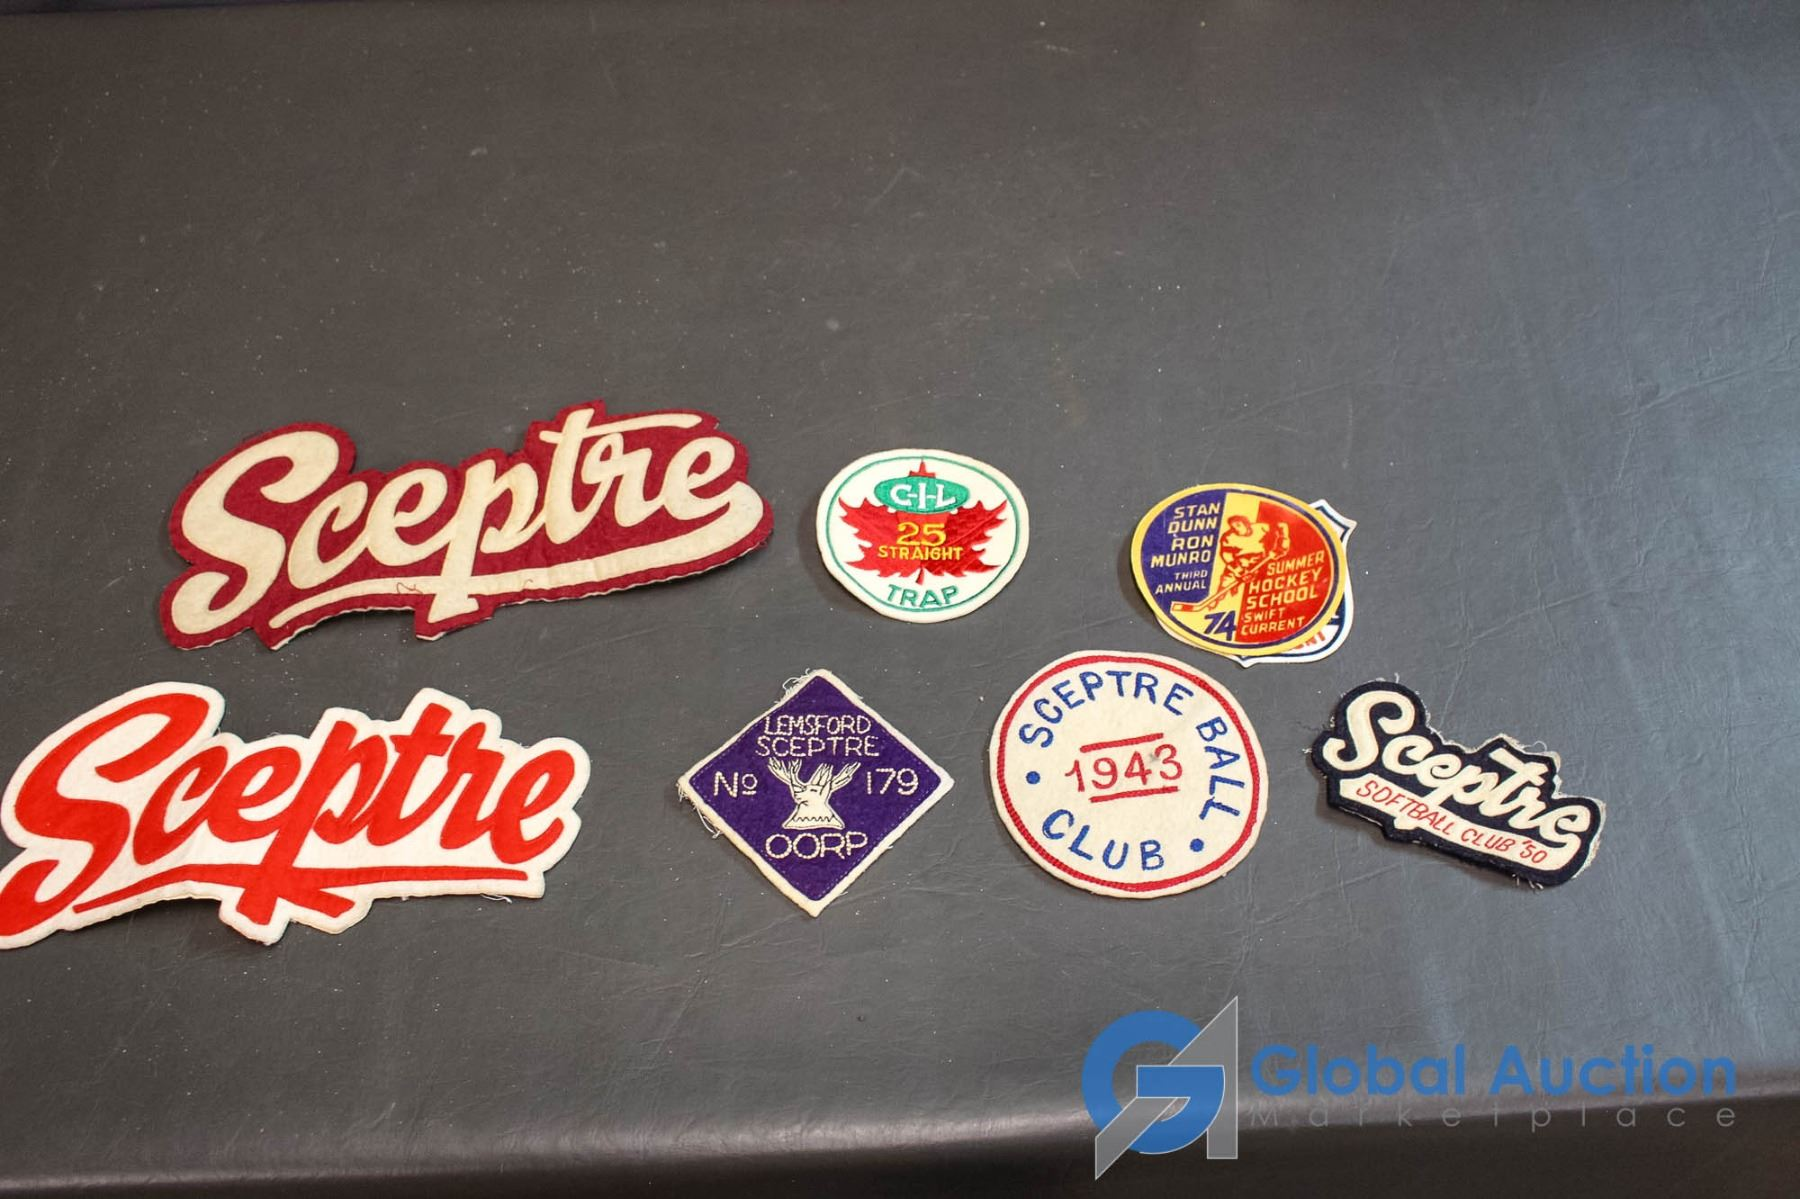 Ceptr (8) assorted vintage patches